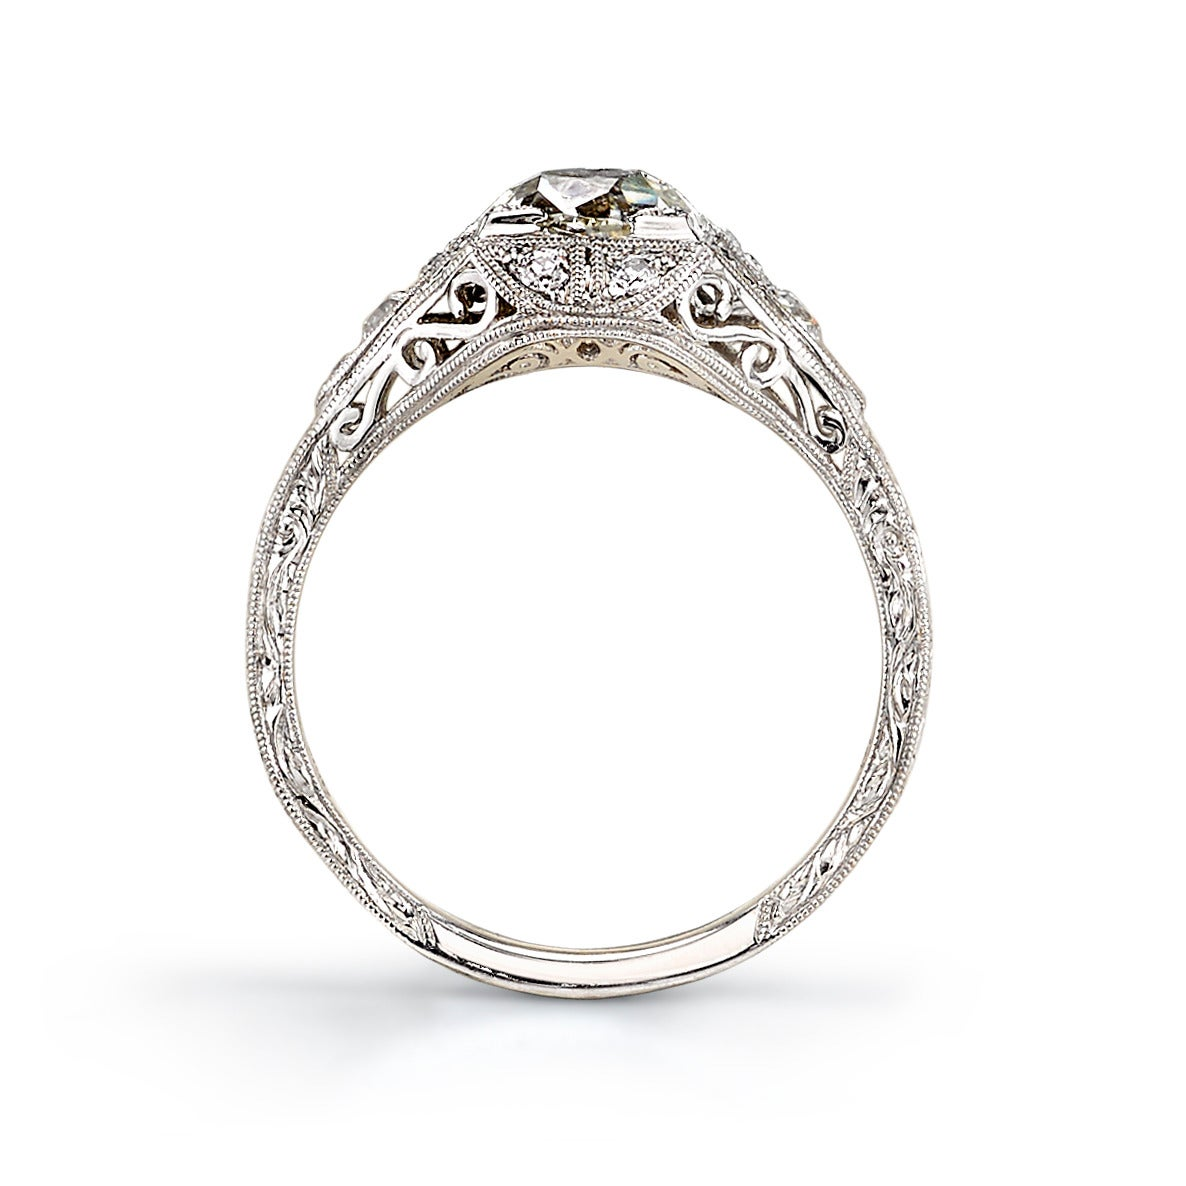 Vintage Cushion Cut Diamond Engagement Ring At 1stdibs